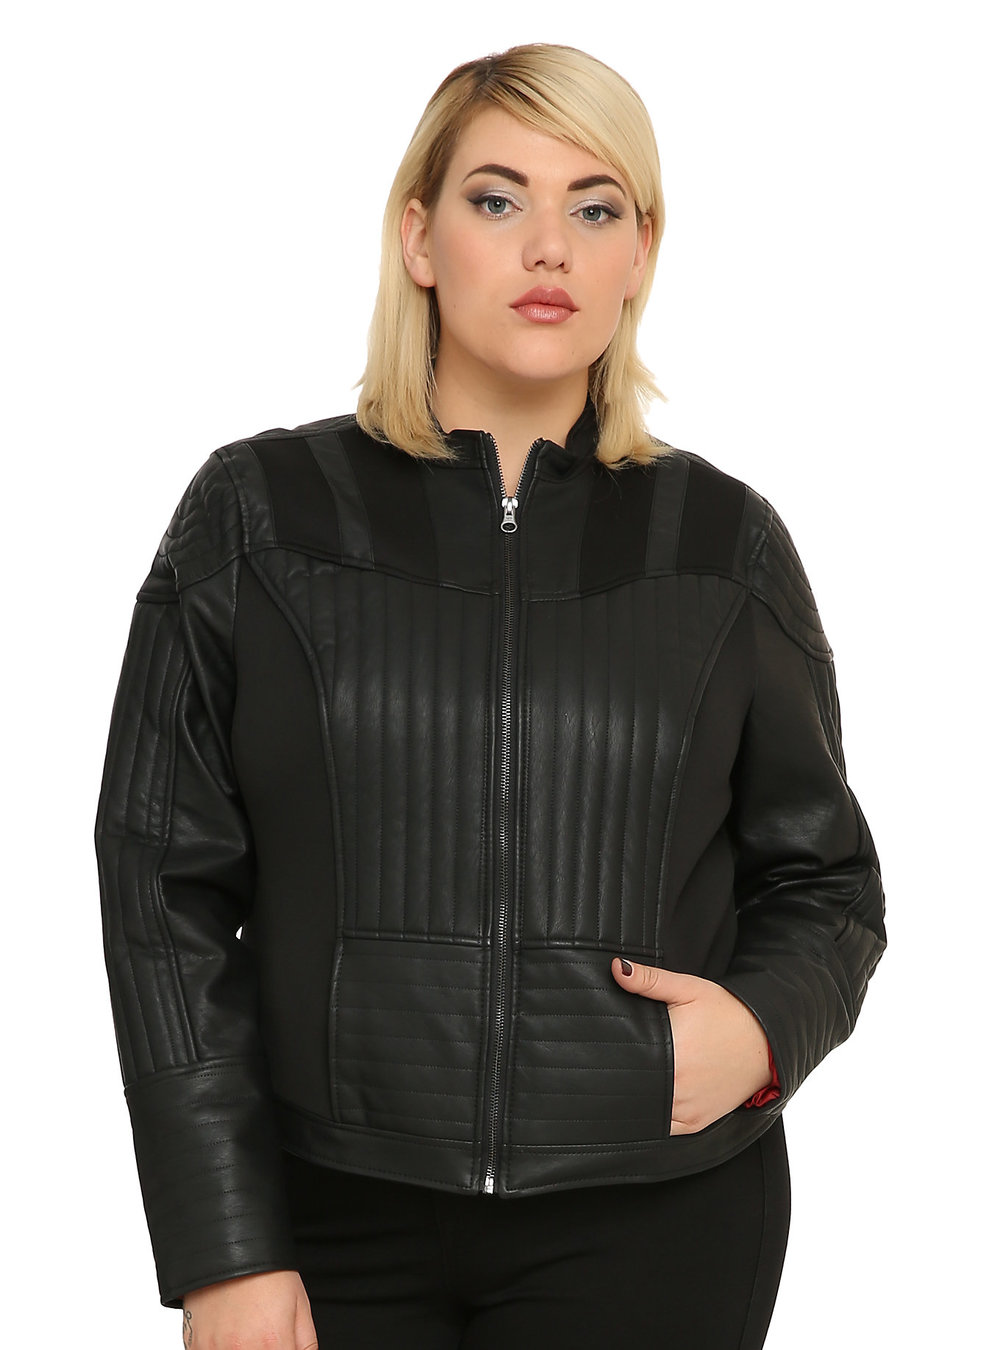 Darth Vader Faux Leather Jacket. Hot Topic. Was: $89 Now: $62. Available in straight and plus sizes.